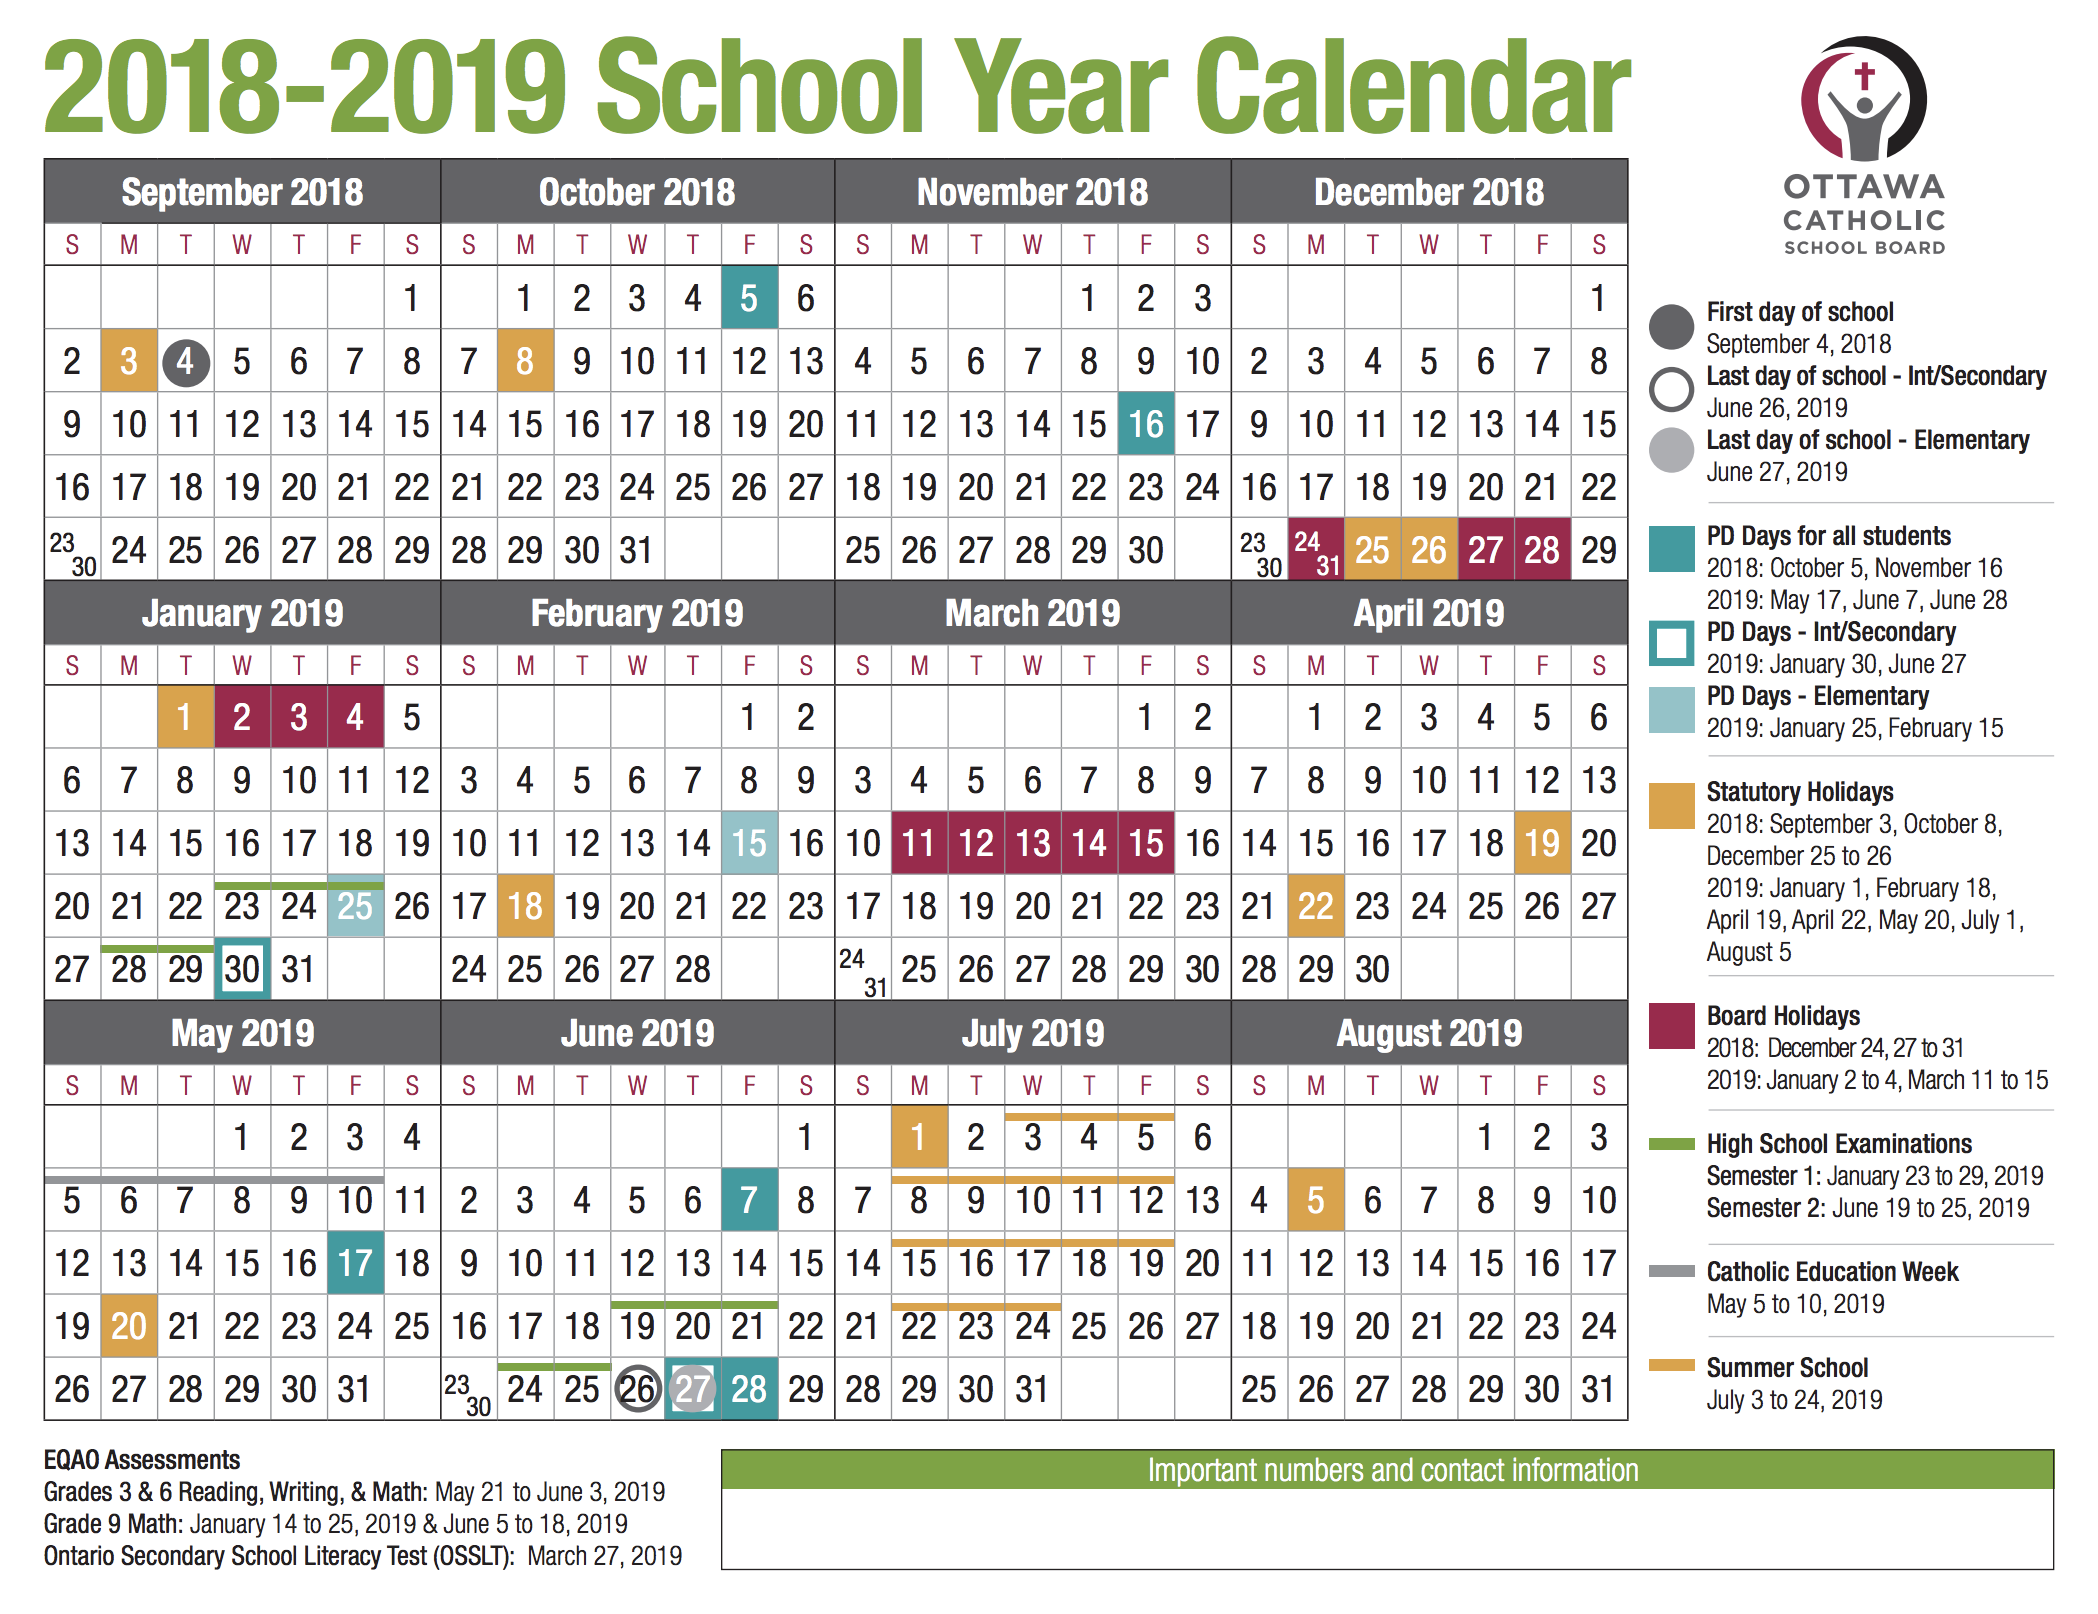 School year calendar from the OCSB